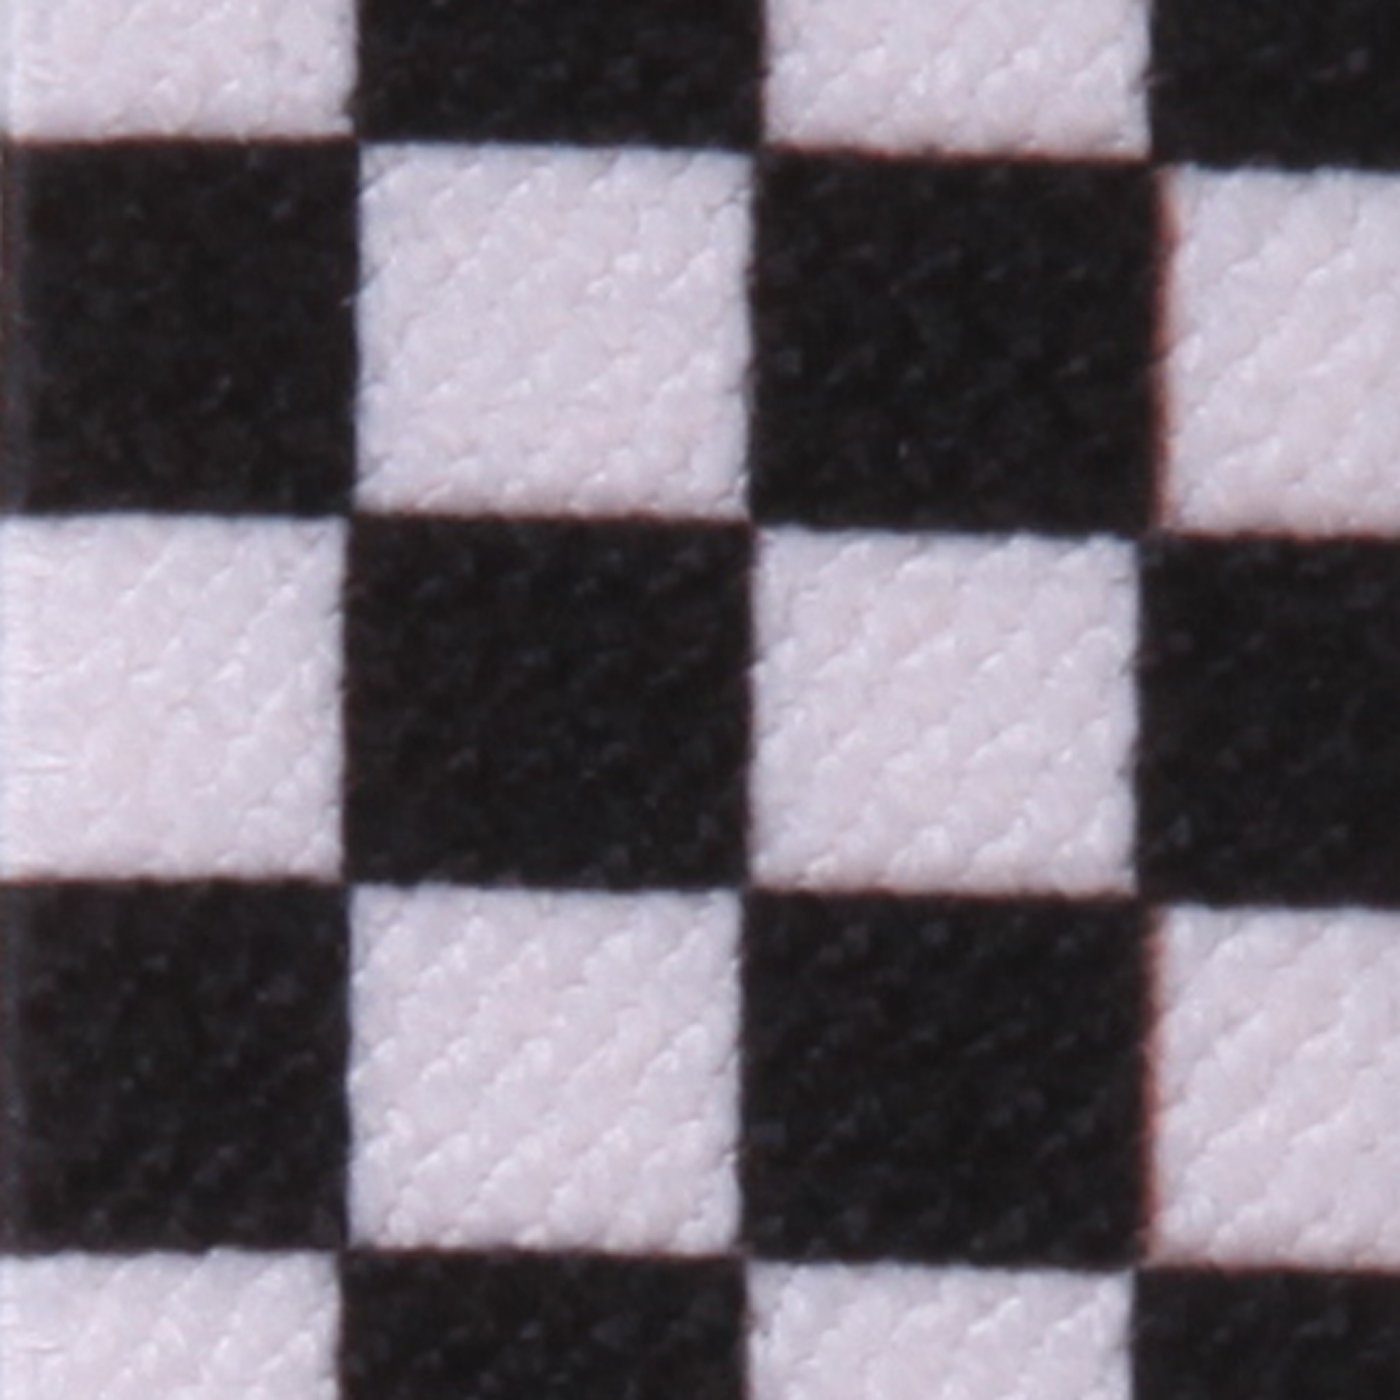 HDE Men's Checkered Suspenders 1 Inch Wide Y-Back Adjustable Elastic Shoulder Strap (Black and White) by HDE (Image #2)